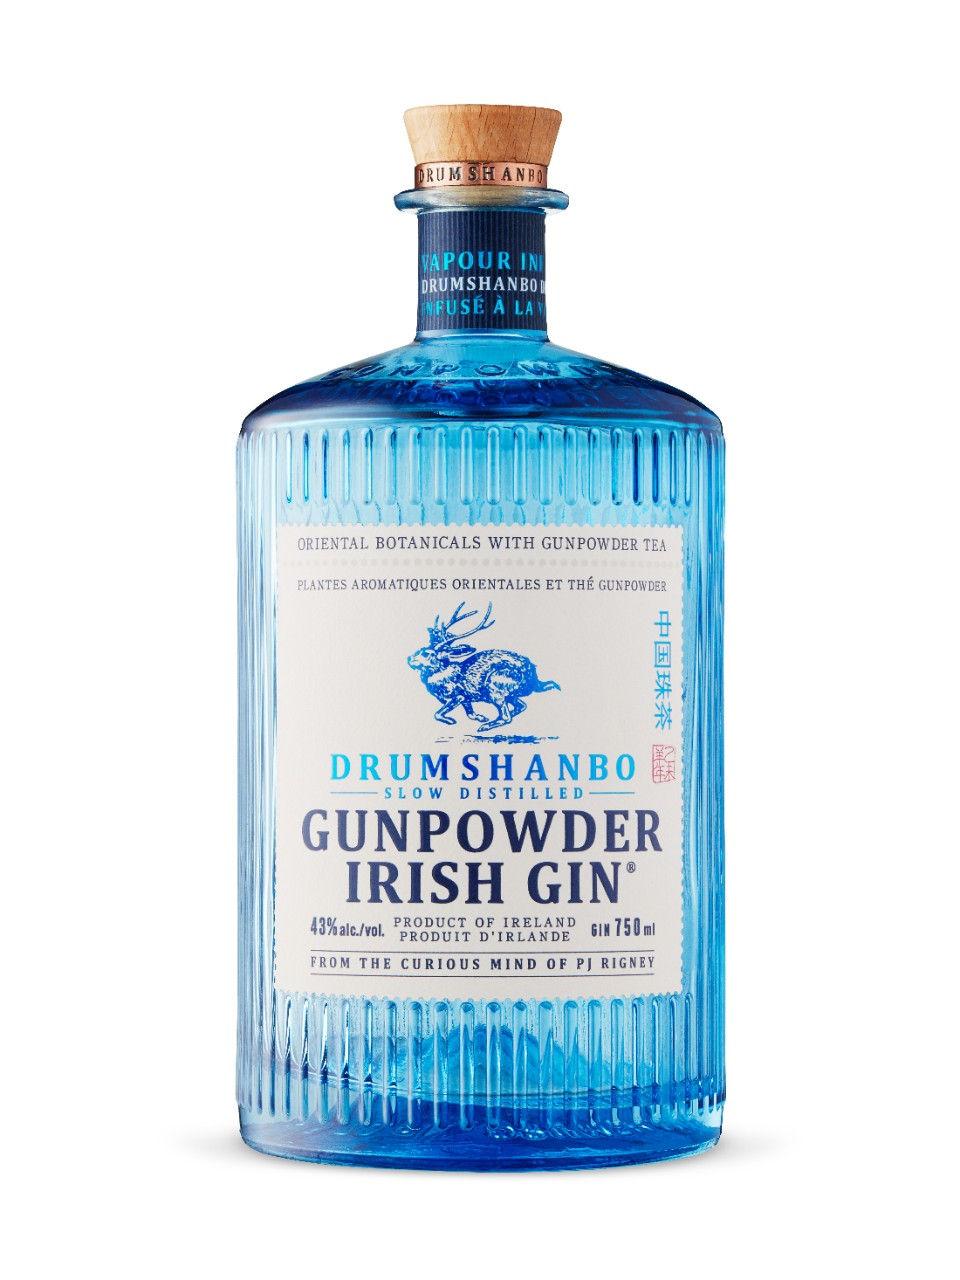 Drumshanbo Gunpowder Irish Gin from LCBO